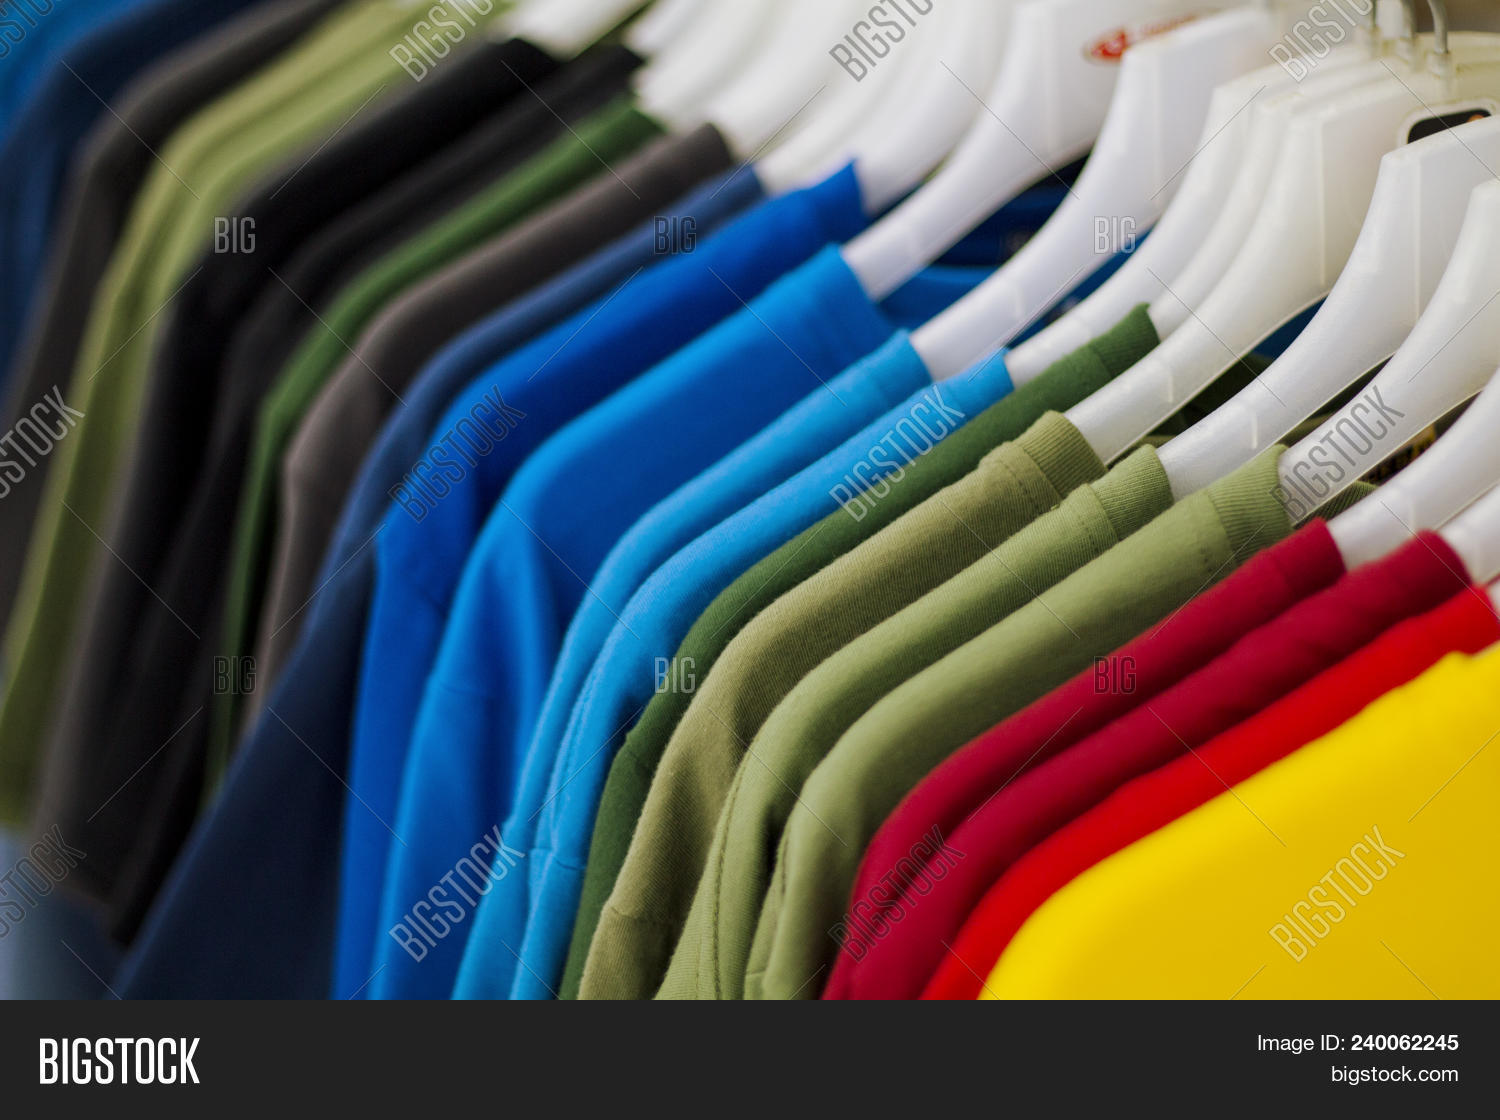 9c29e54a194 🔥 Colorful T-shirts On Hang For Sale In Shop. Multicolored Summer ...